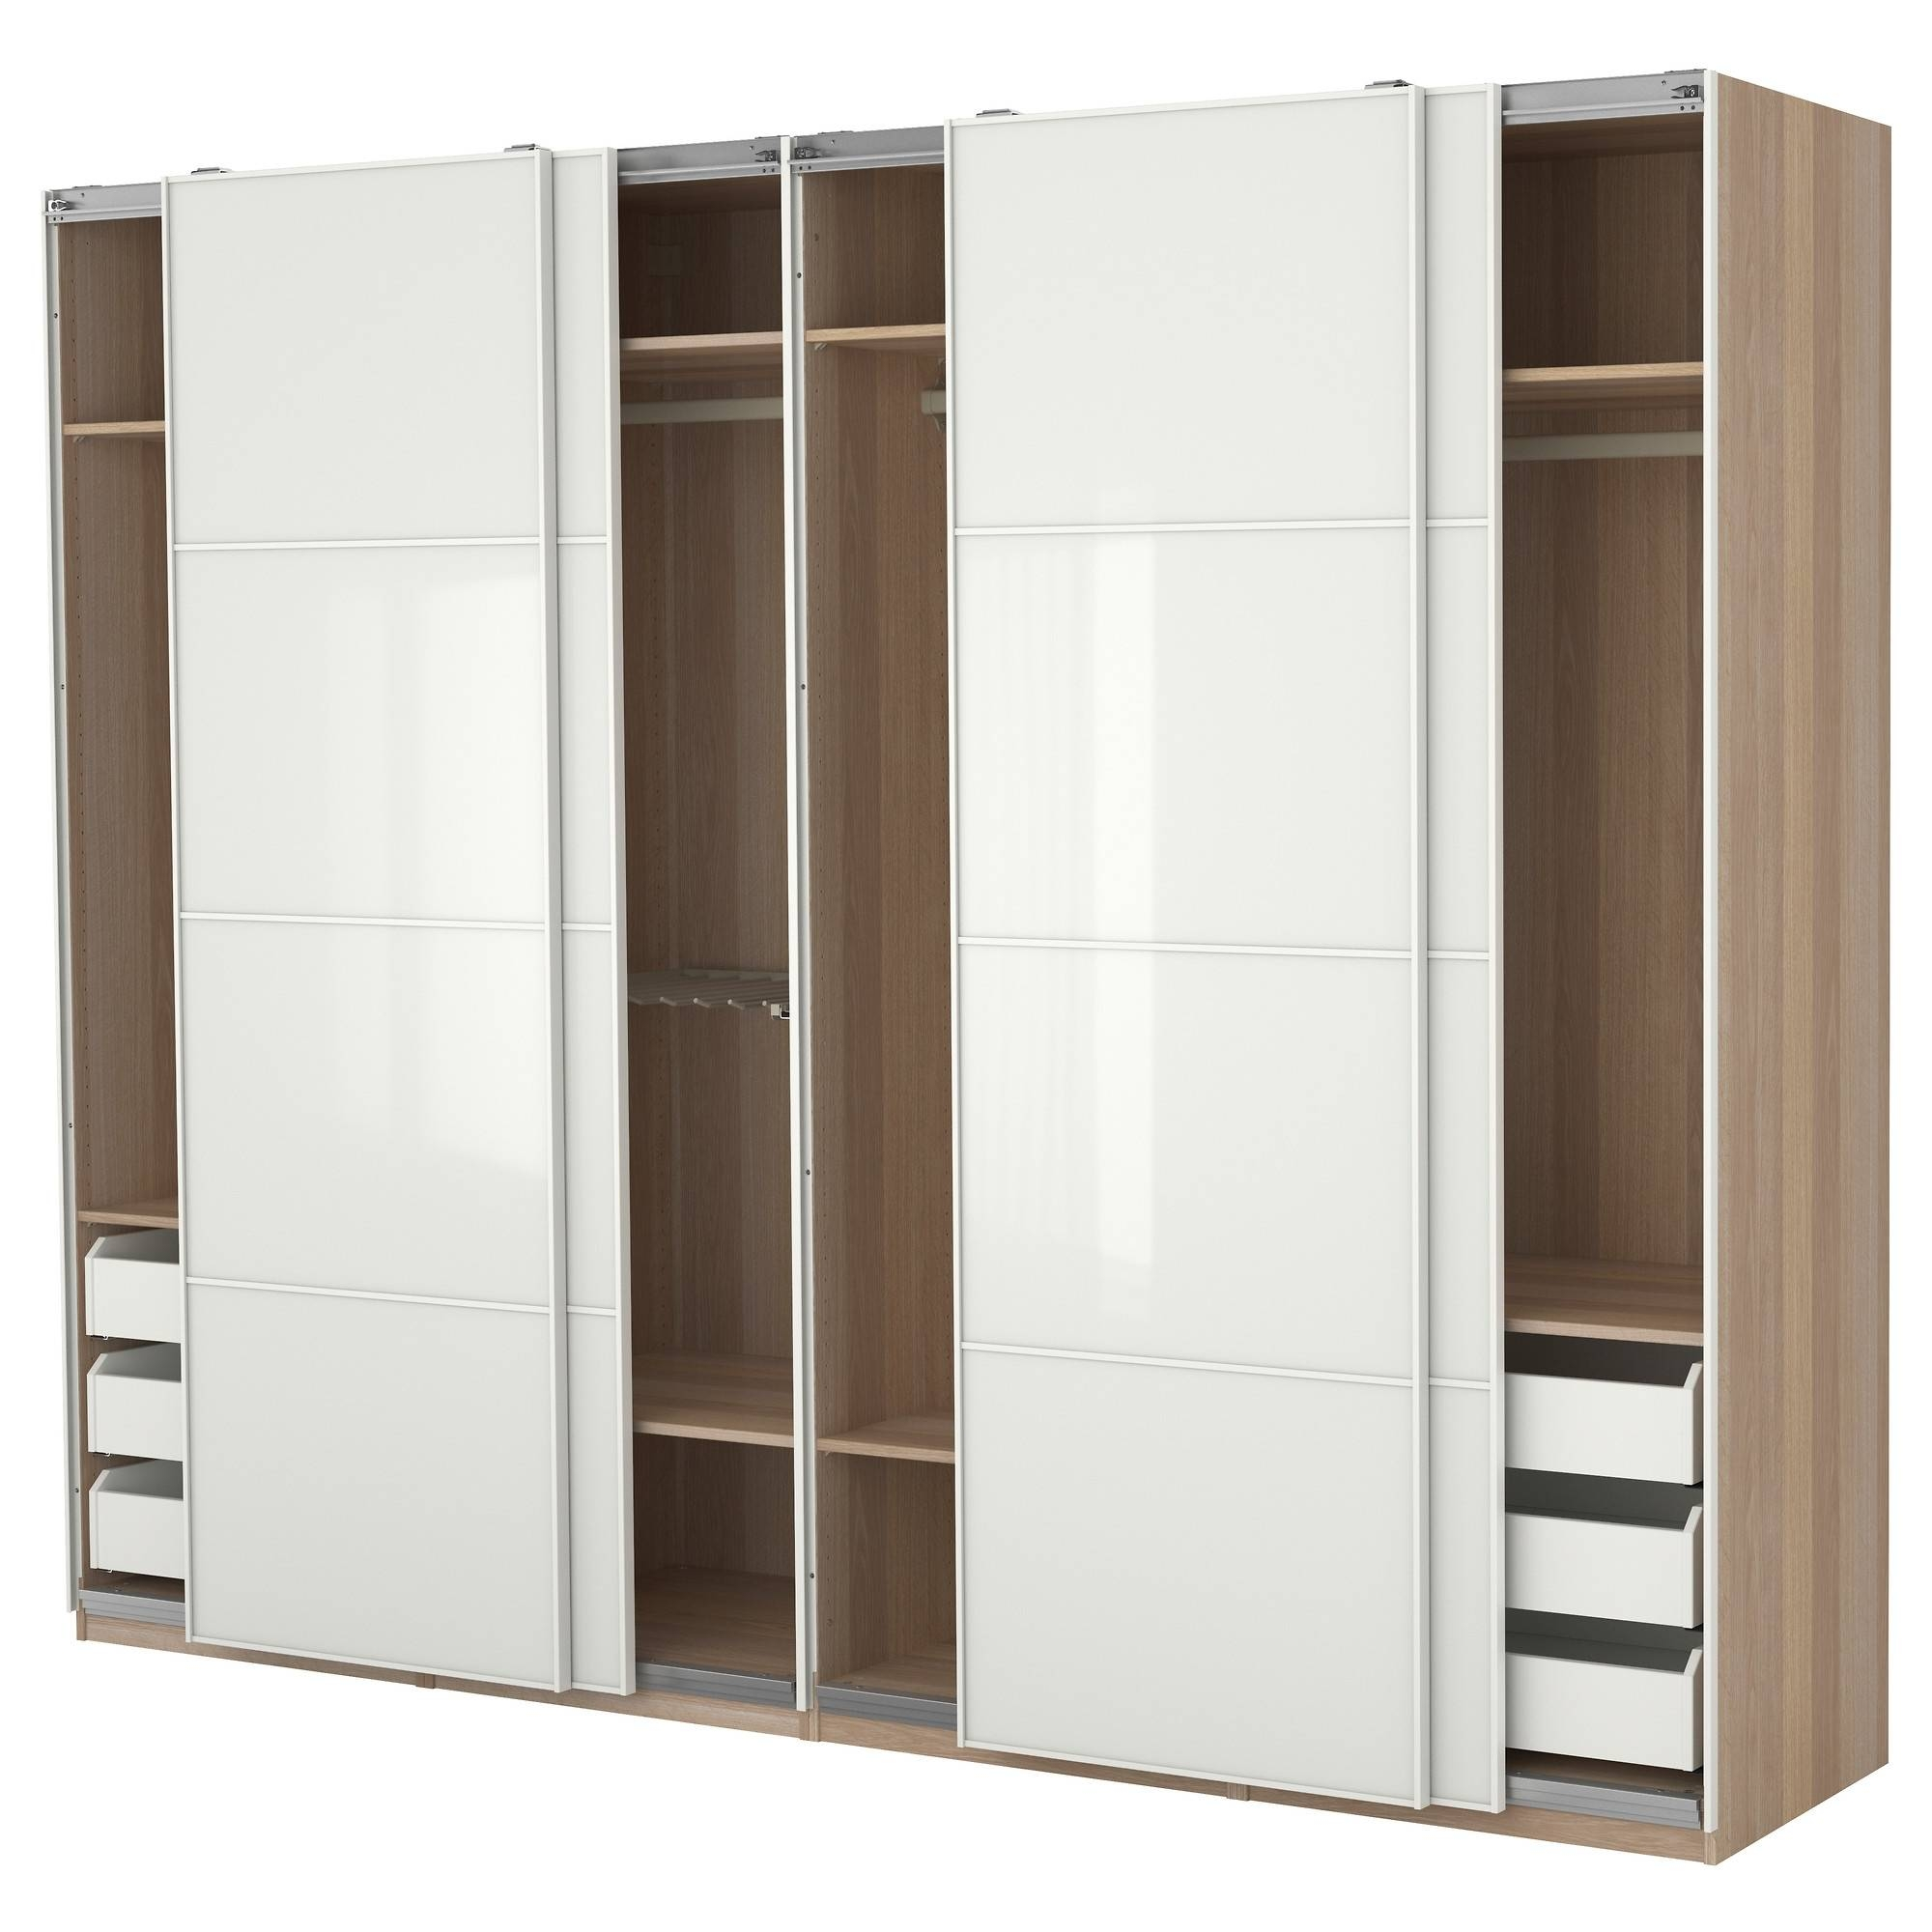 15 Ideas Of Solid Wood Built In Wardrobes With Solid Wood Built In Wardrobes (View 8 of 30)